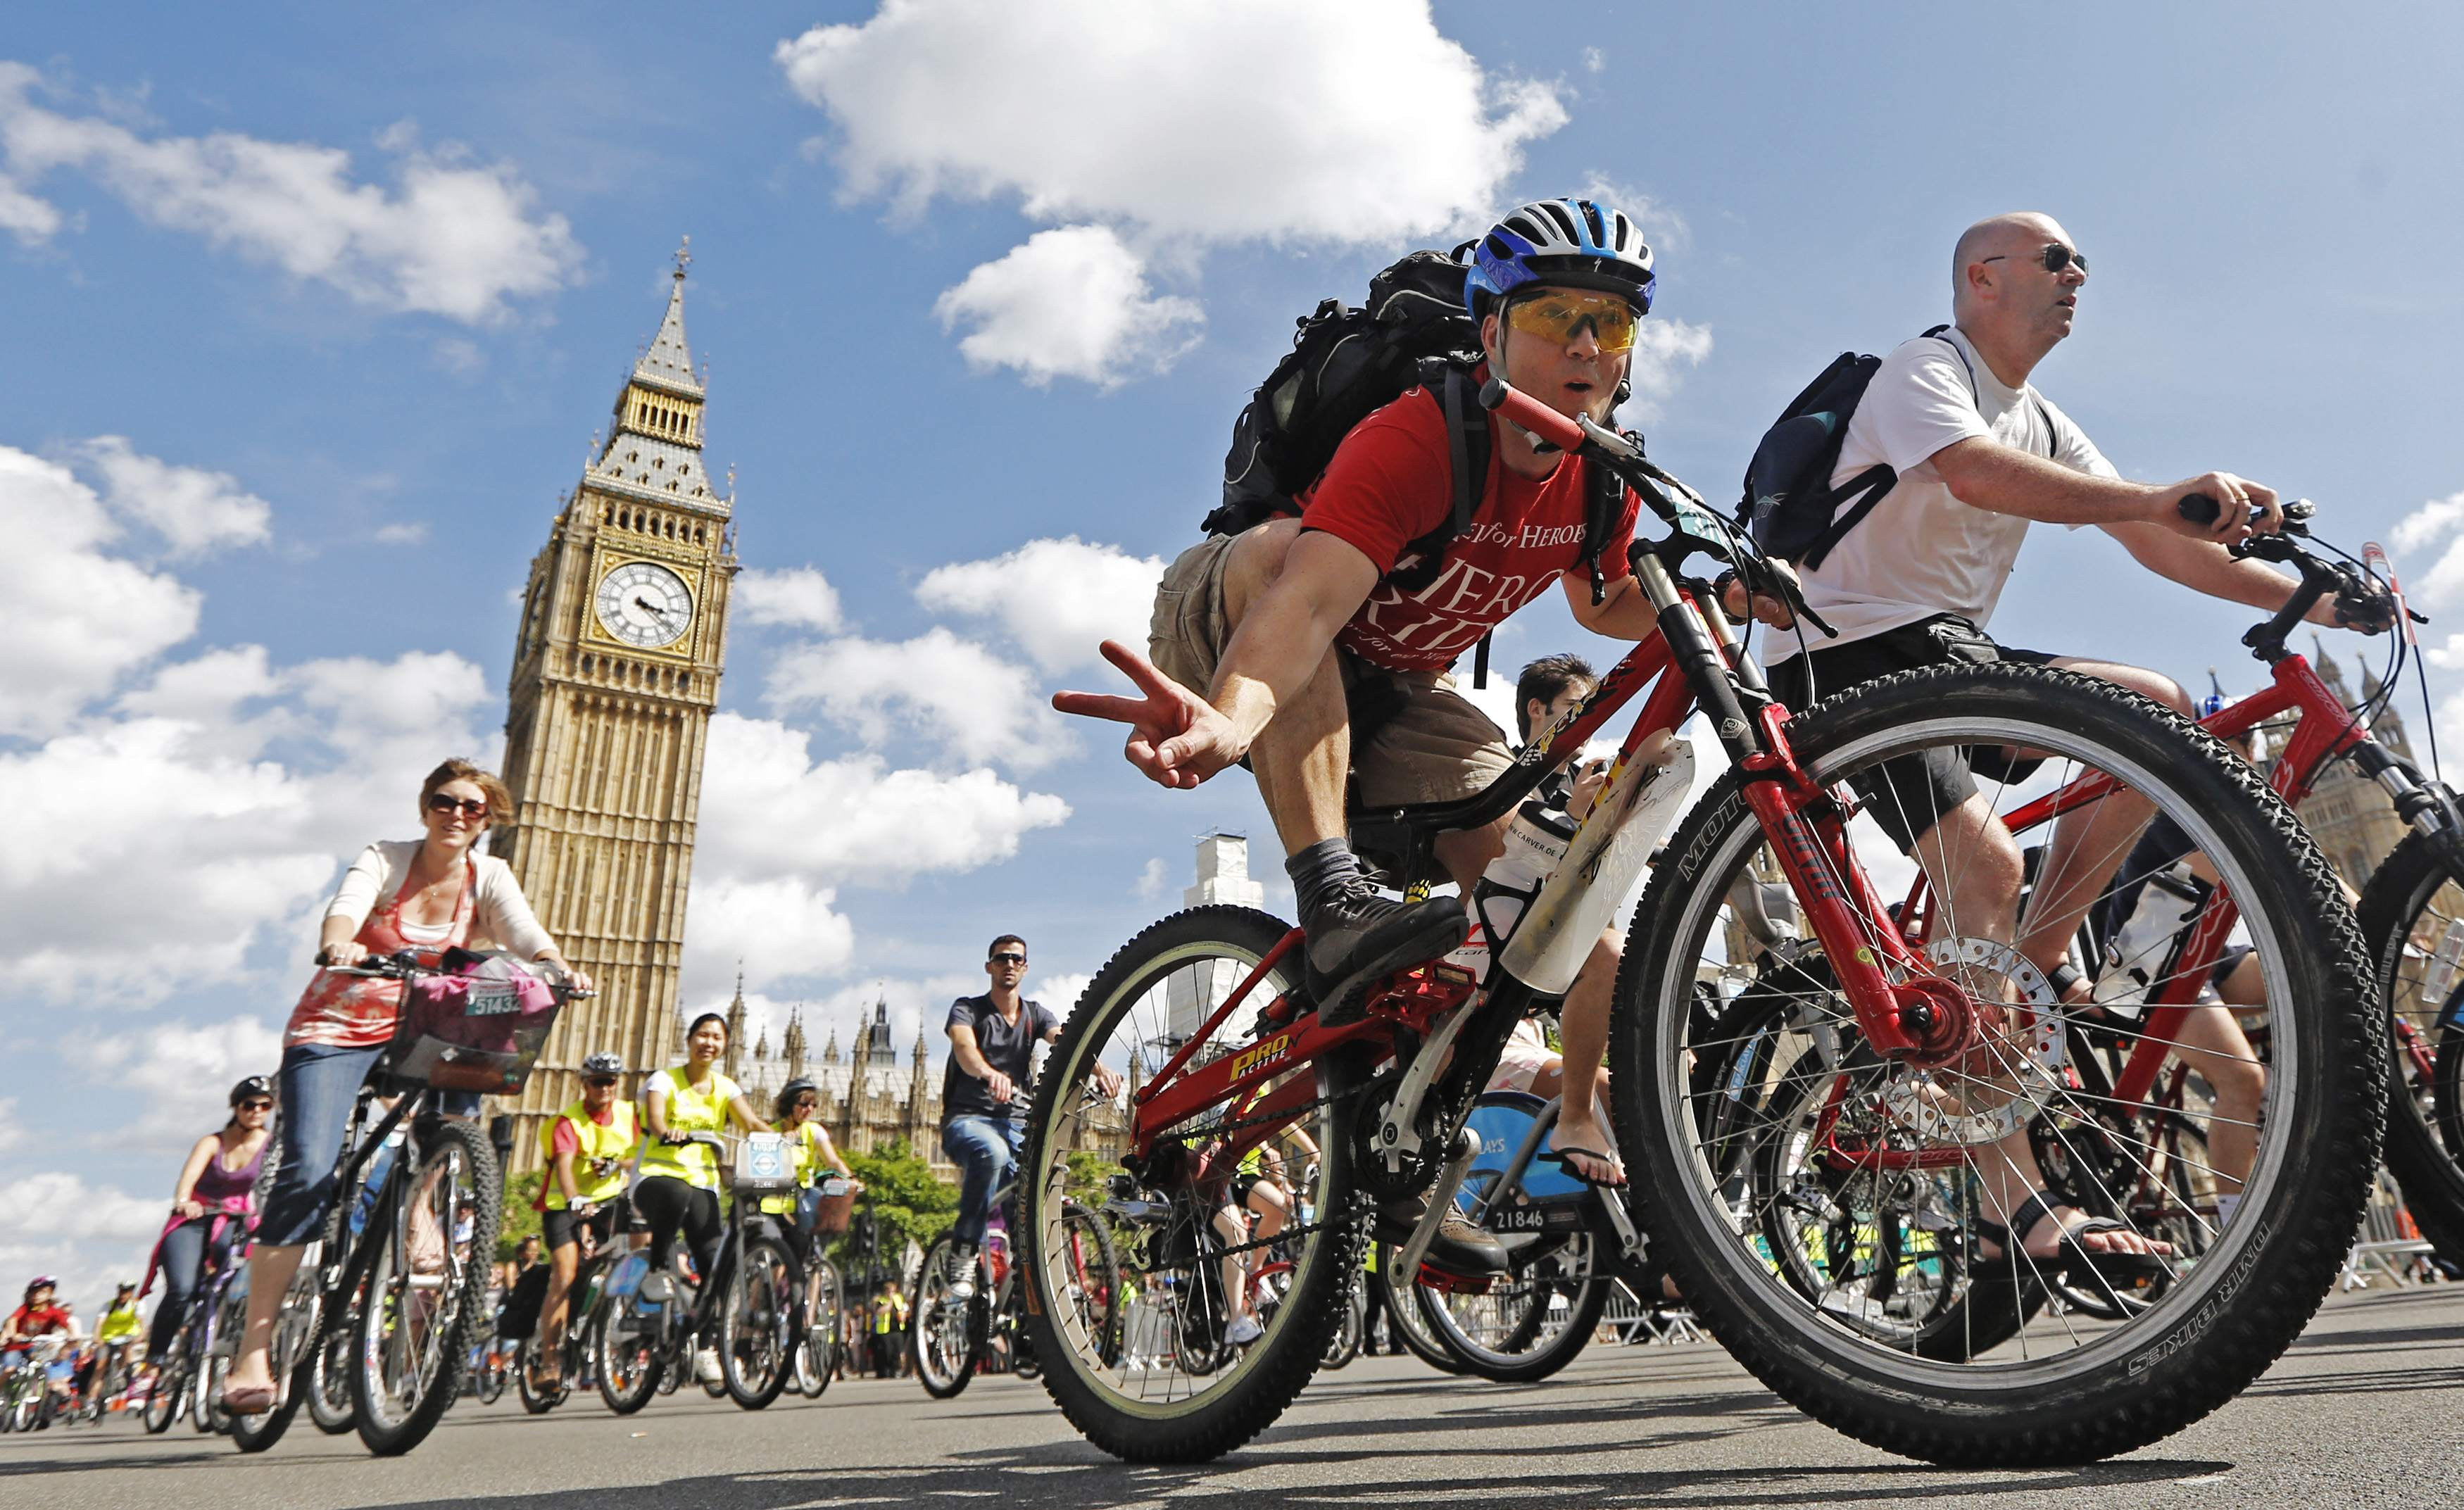 prudential ride Cyclists of all ages ride past the Houses of Parliament during the Prudential RideLondon FreeCycle ride in central London